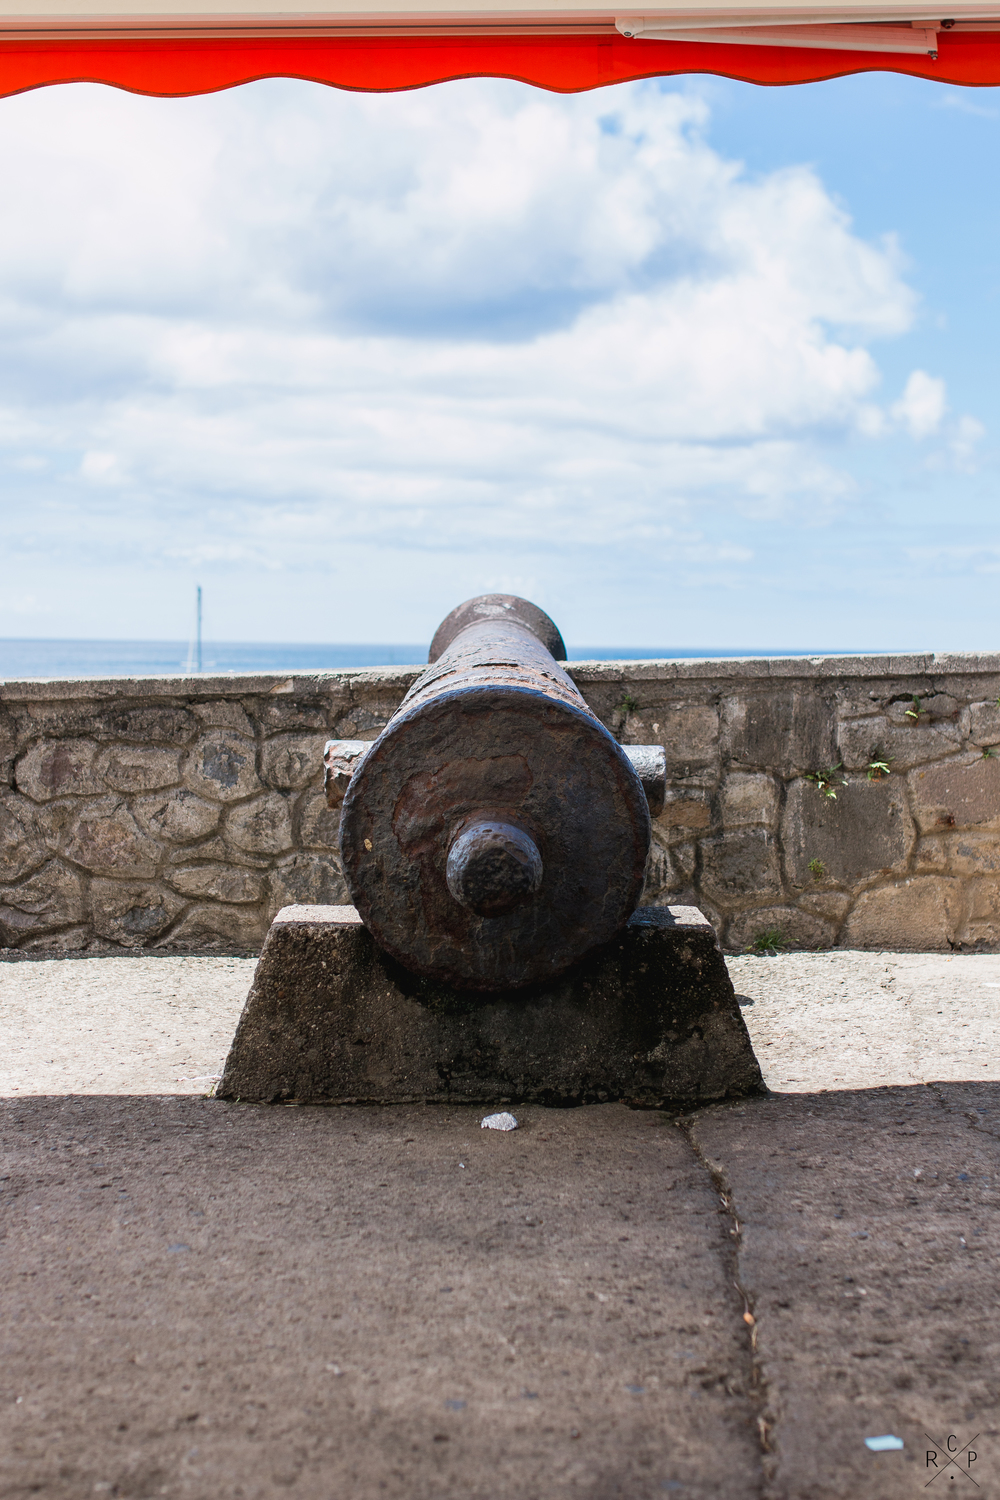 Cannon - Saint Pierre, Martinique 06/03/2016